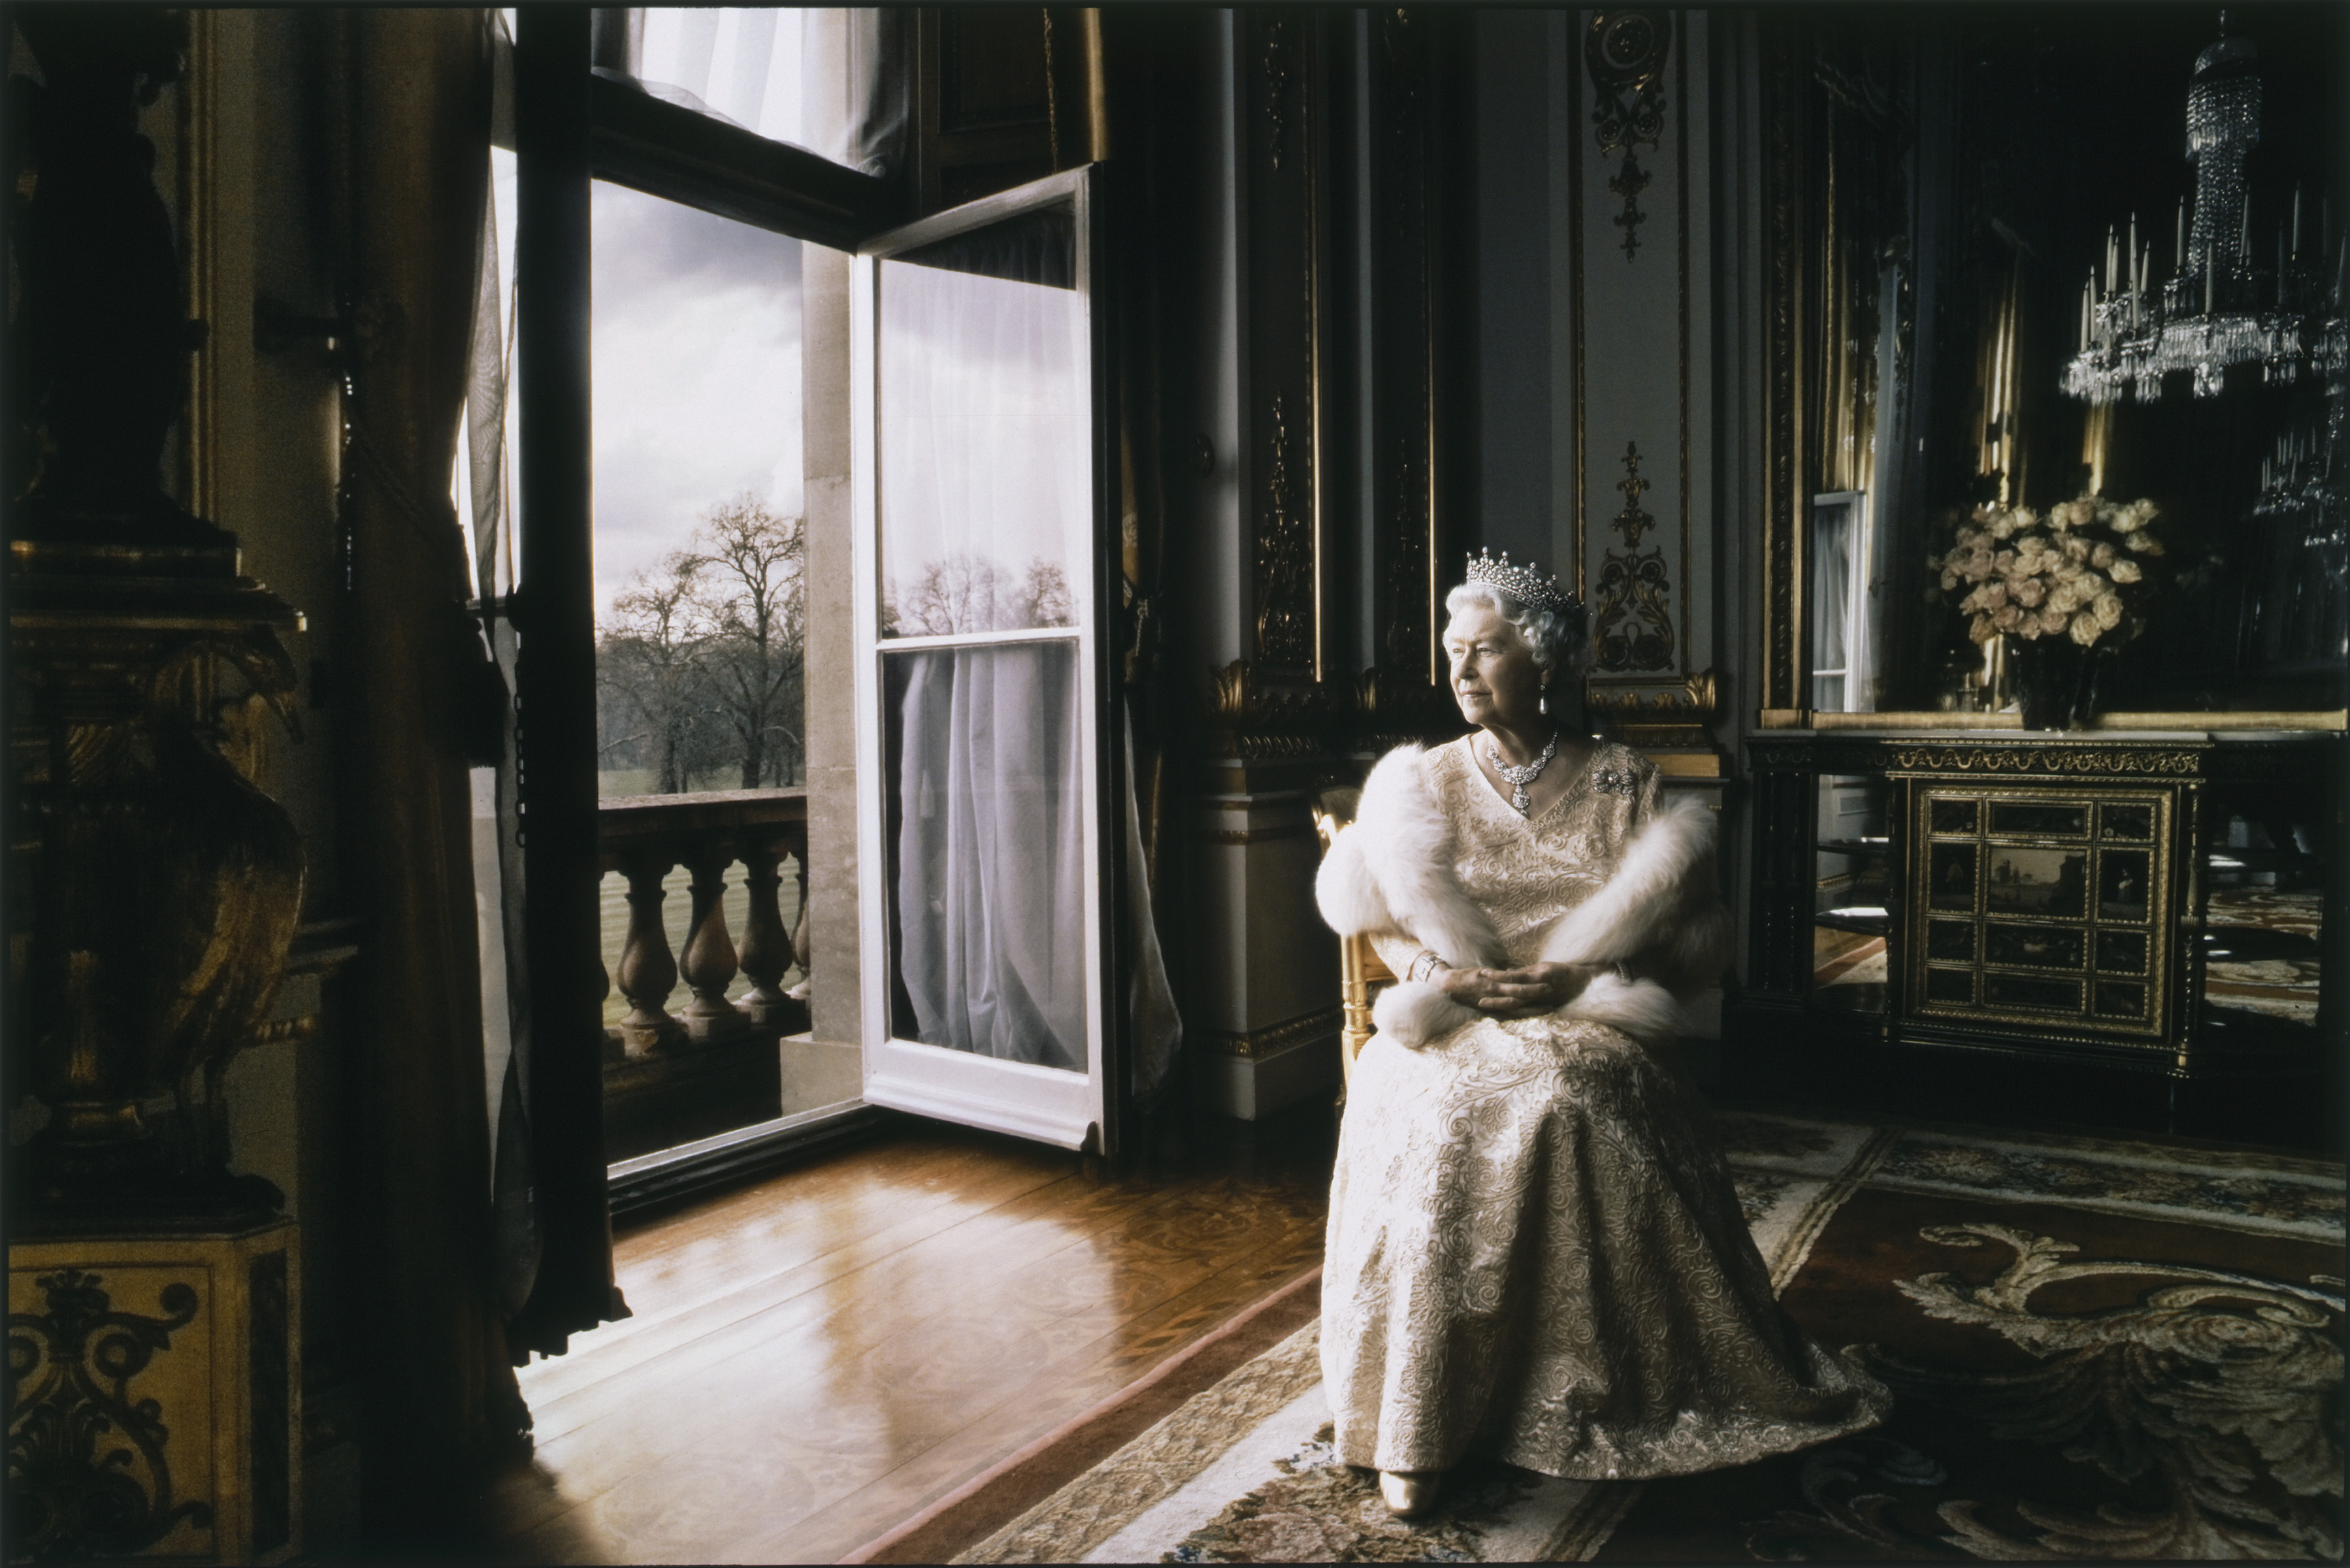 Queen Elizabeth II by Annie Leibovitz, 2007 Official Portrait of HRH Queen Elizabeth II © 2008 Annie Leibovitz, courtesy of the artist